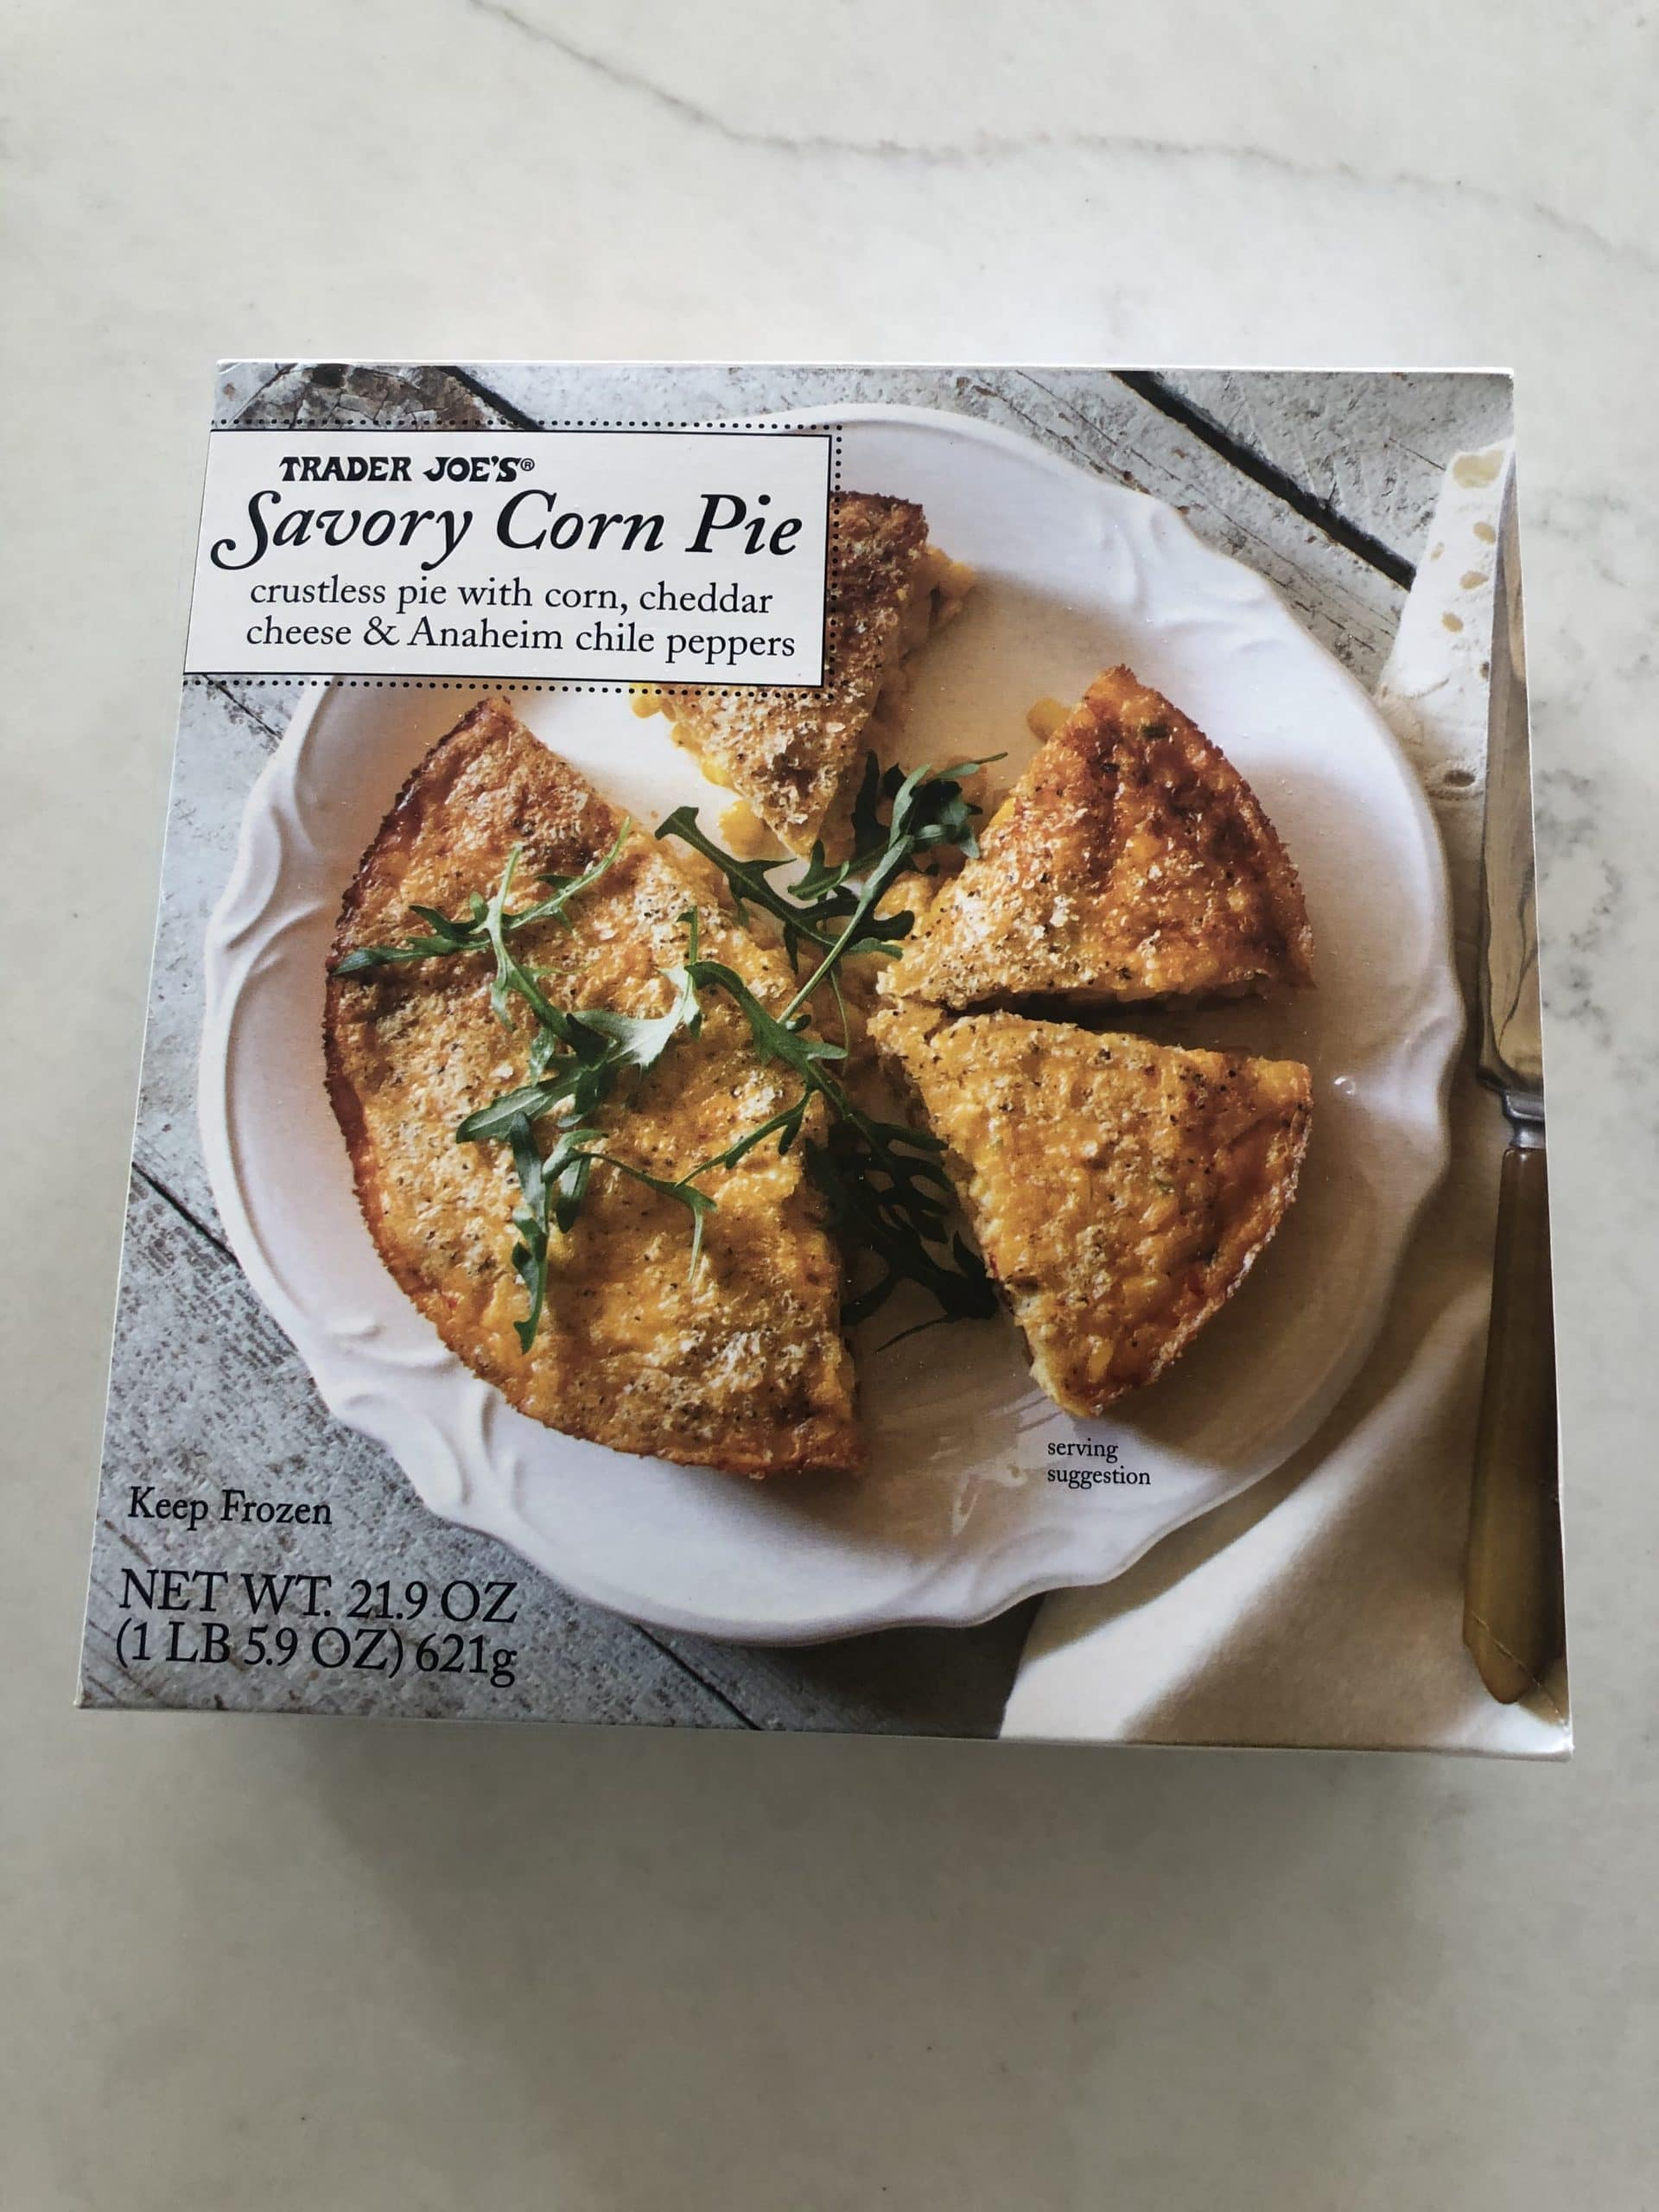 Savory Corn Pie from Trader Joes